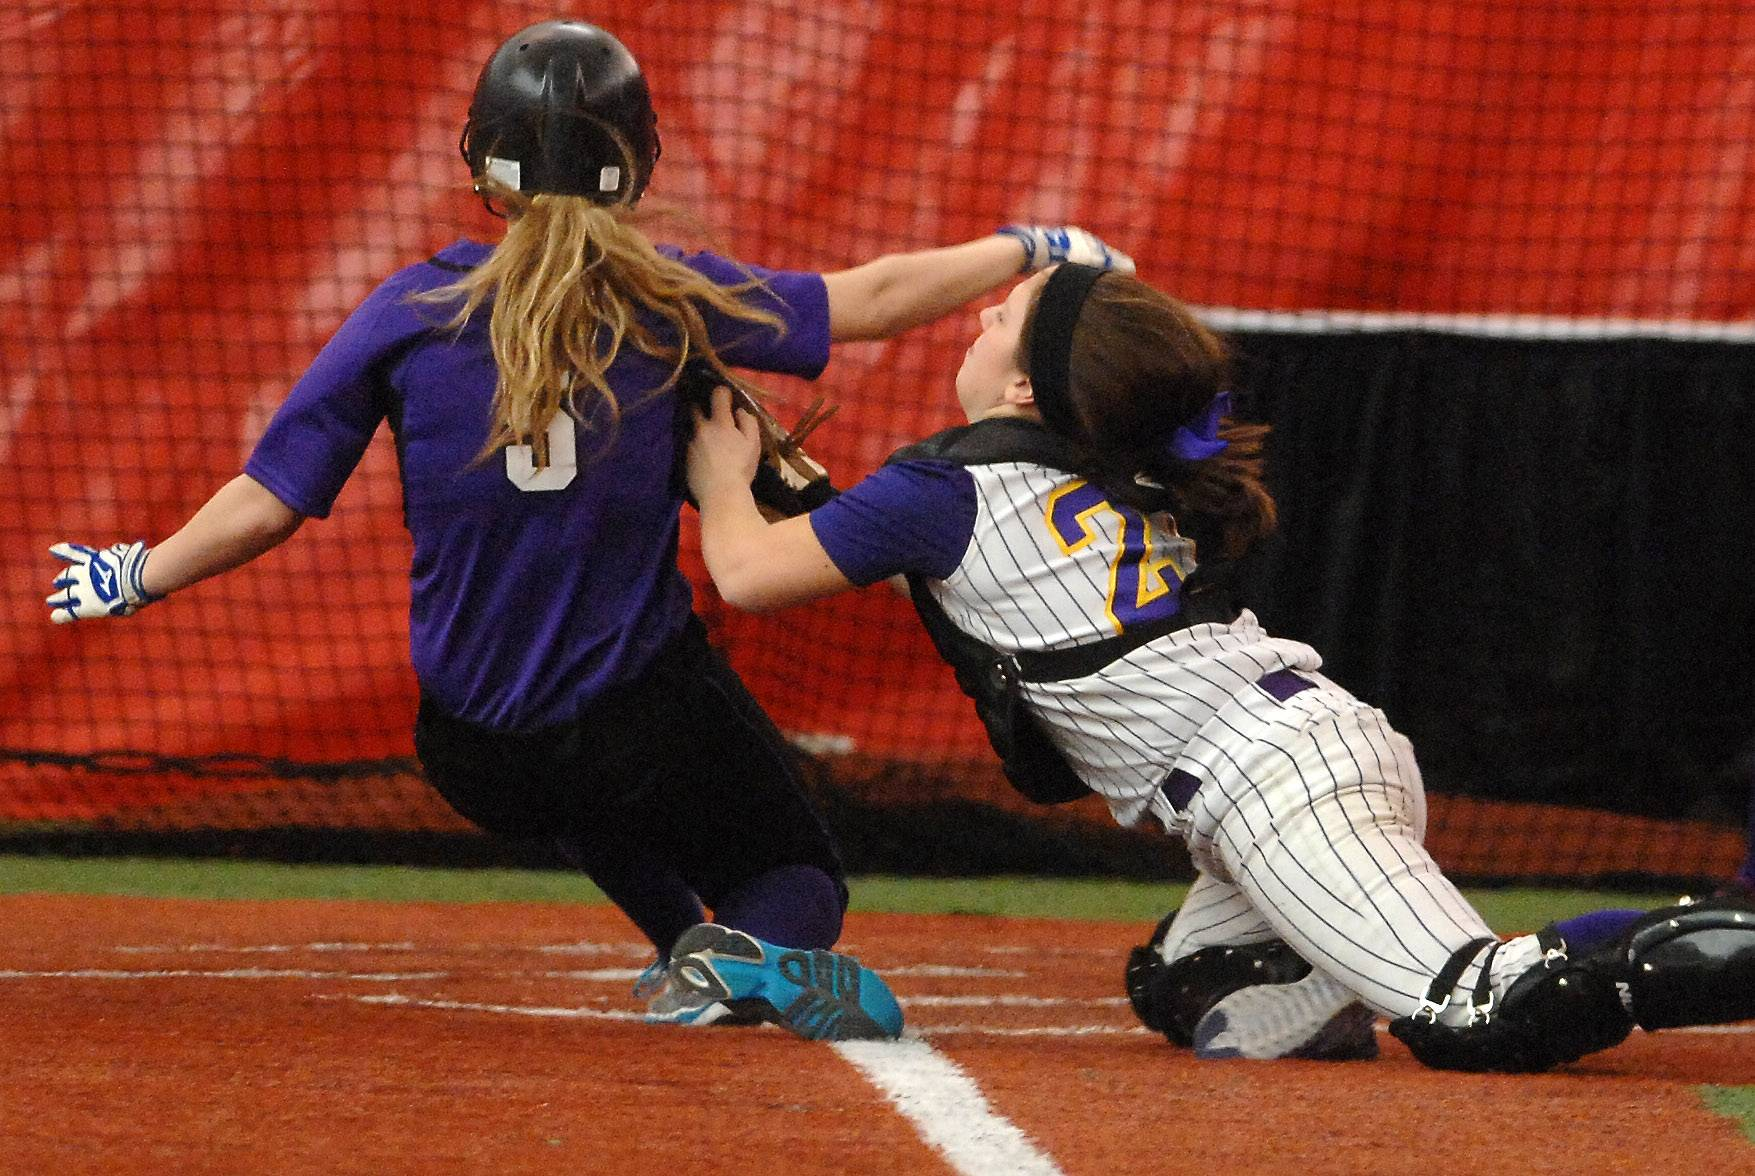 Hampshire's Sara Finn is tagged out at the plate by Wauconda's Taylor McCarthy during game two of doubleheader softball action Monday at The Dome in Rosemont.